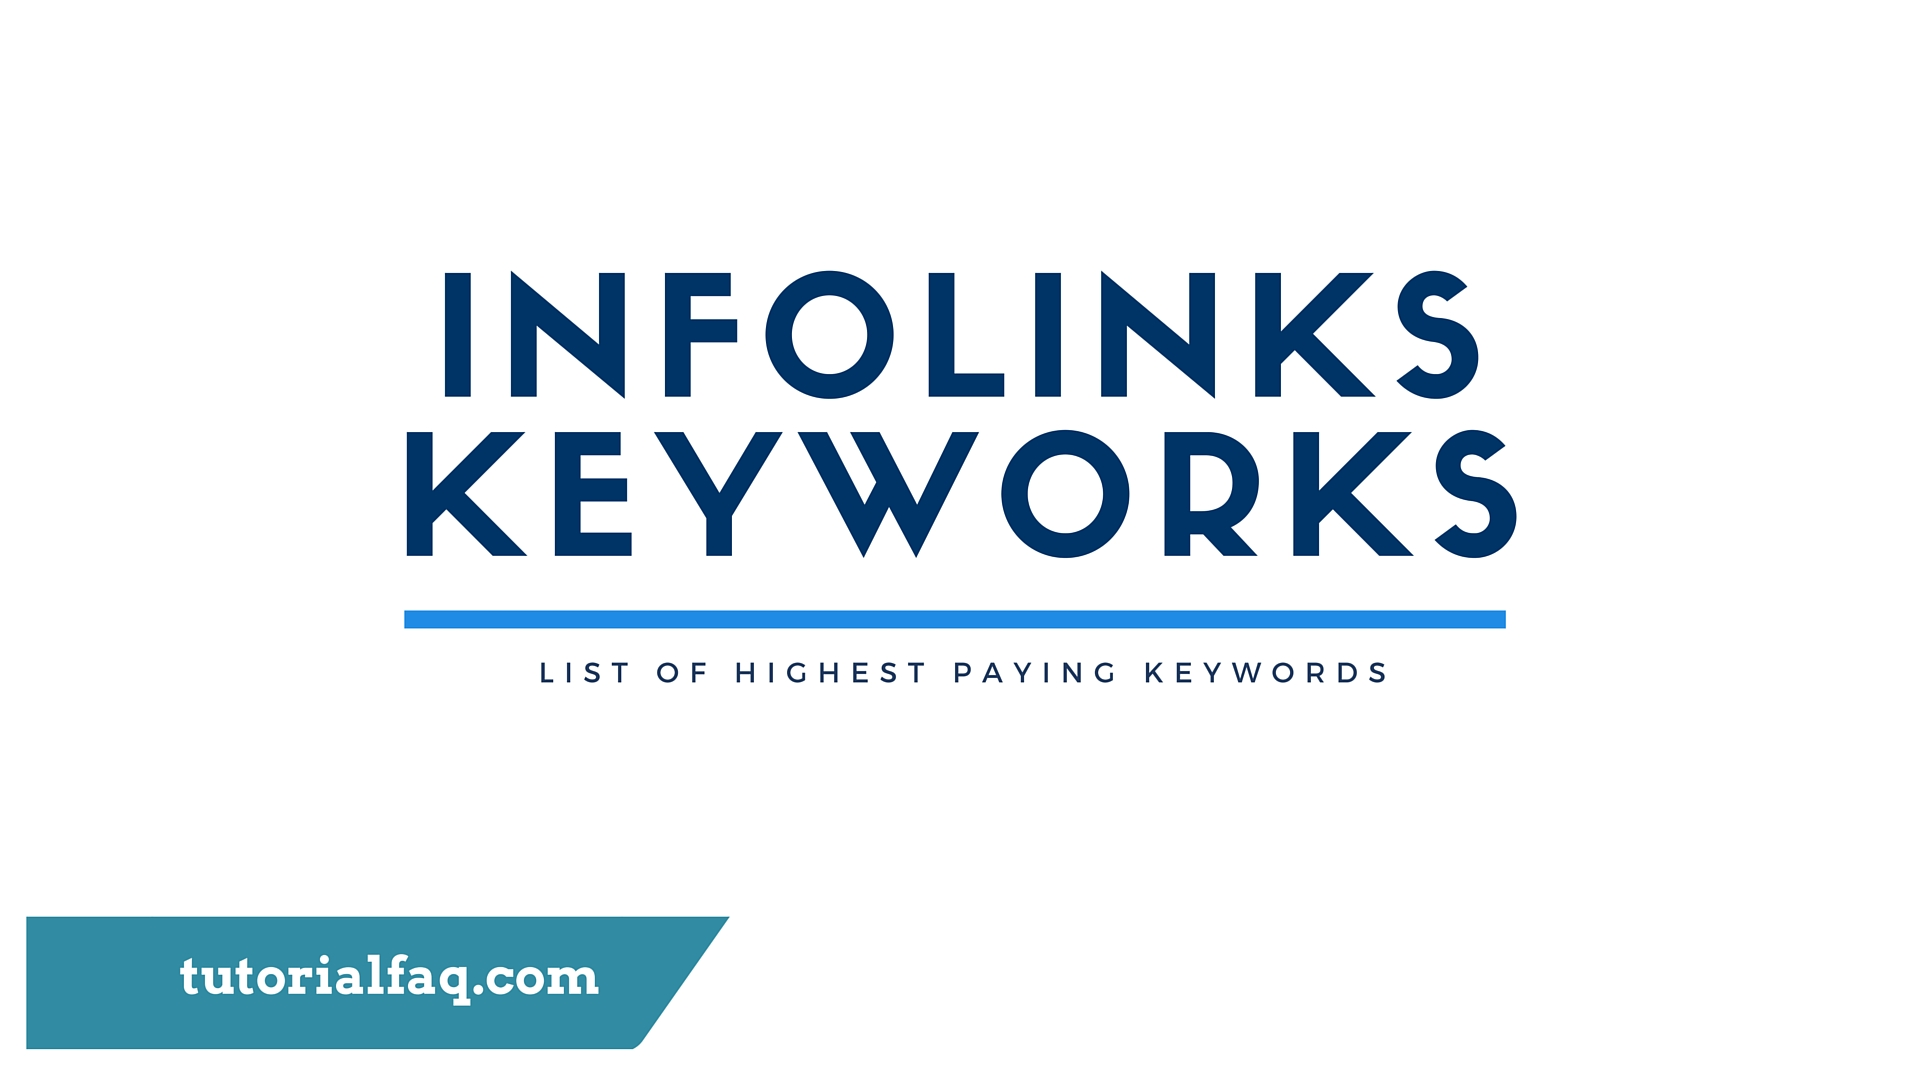 infolinks keywords